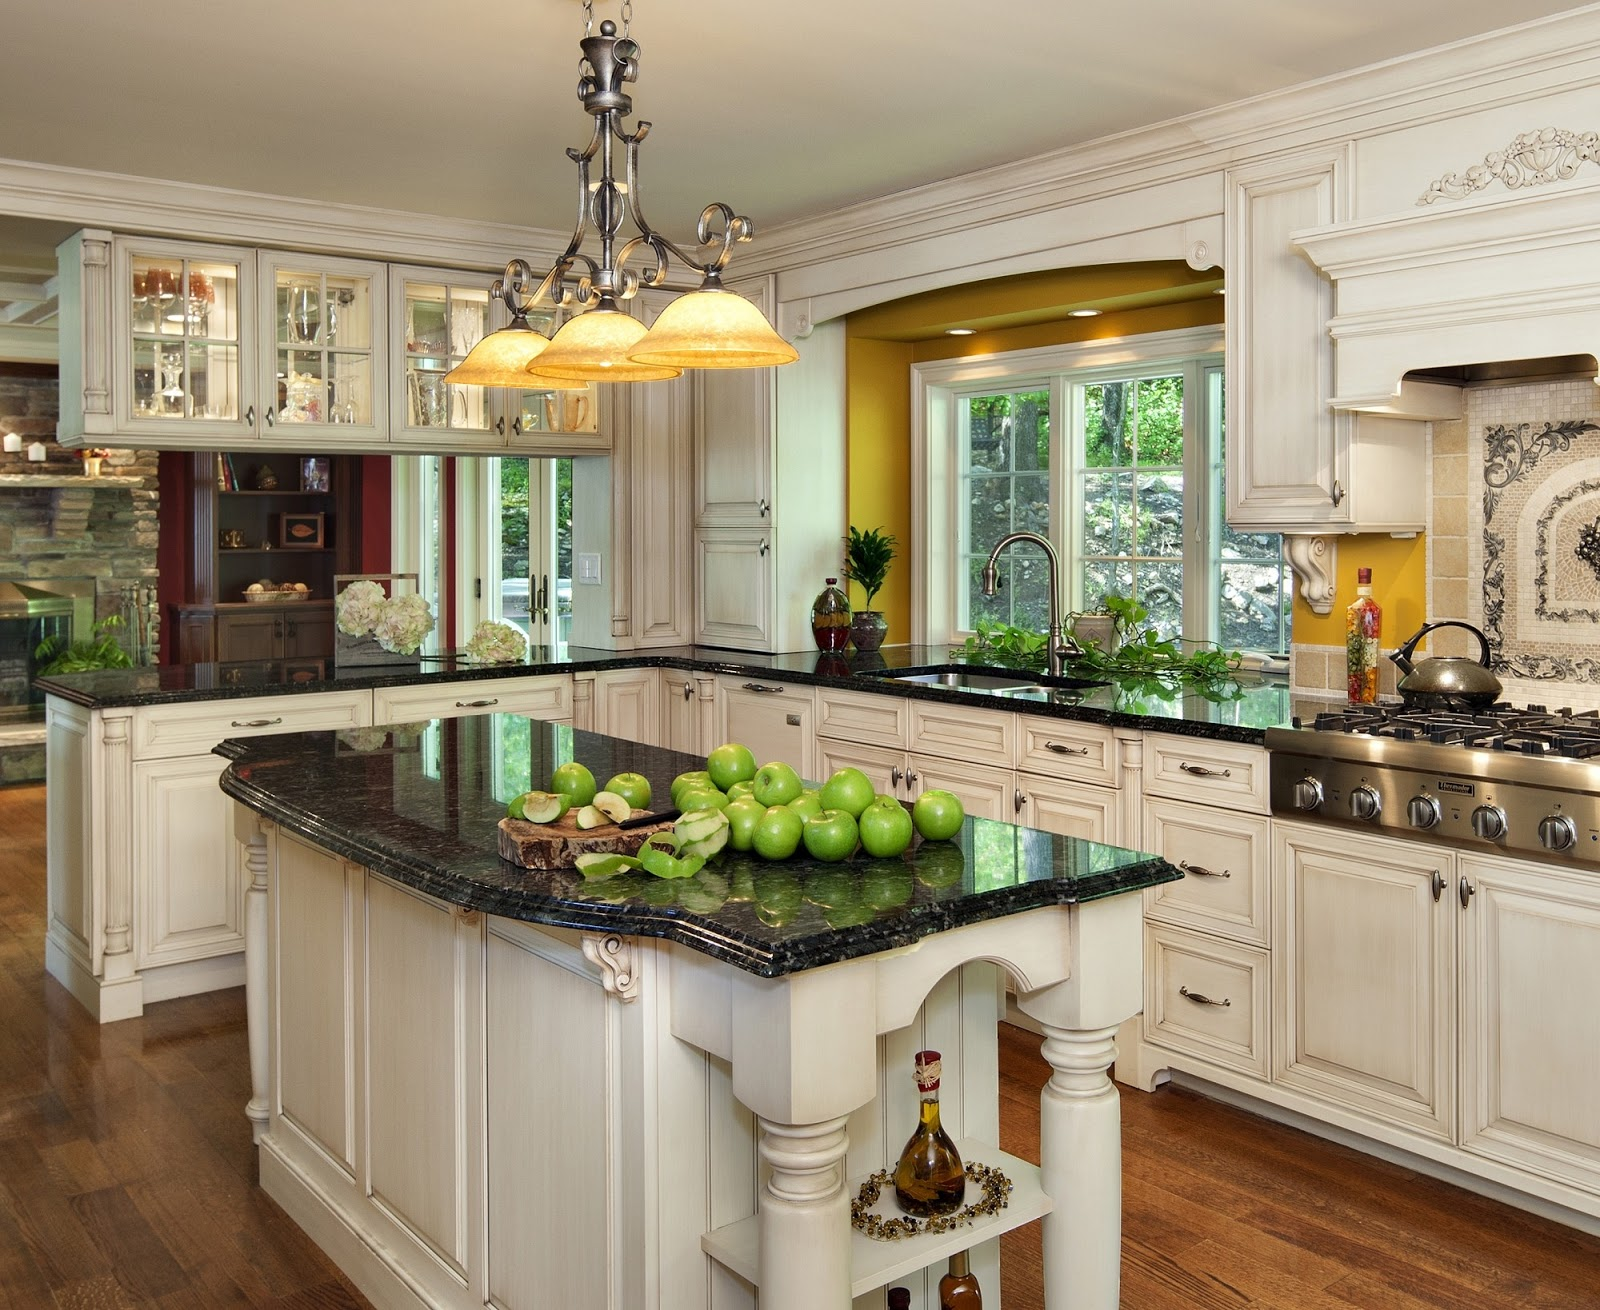 Uncategorized Green Granite Countertops Kitchen emerald green granite kitchen countertop ideas book ideas